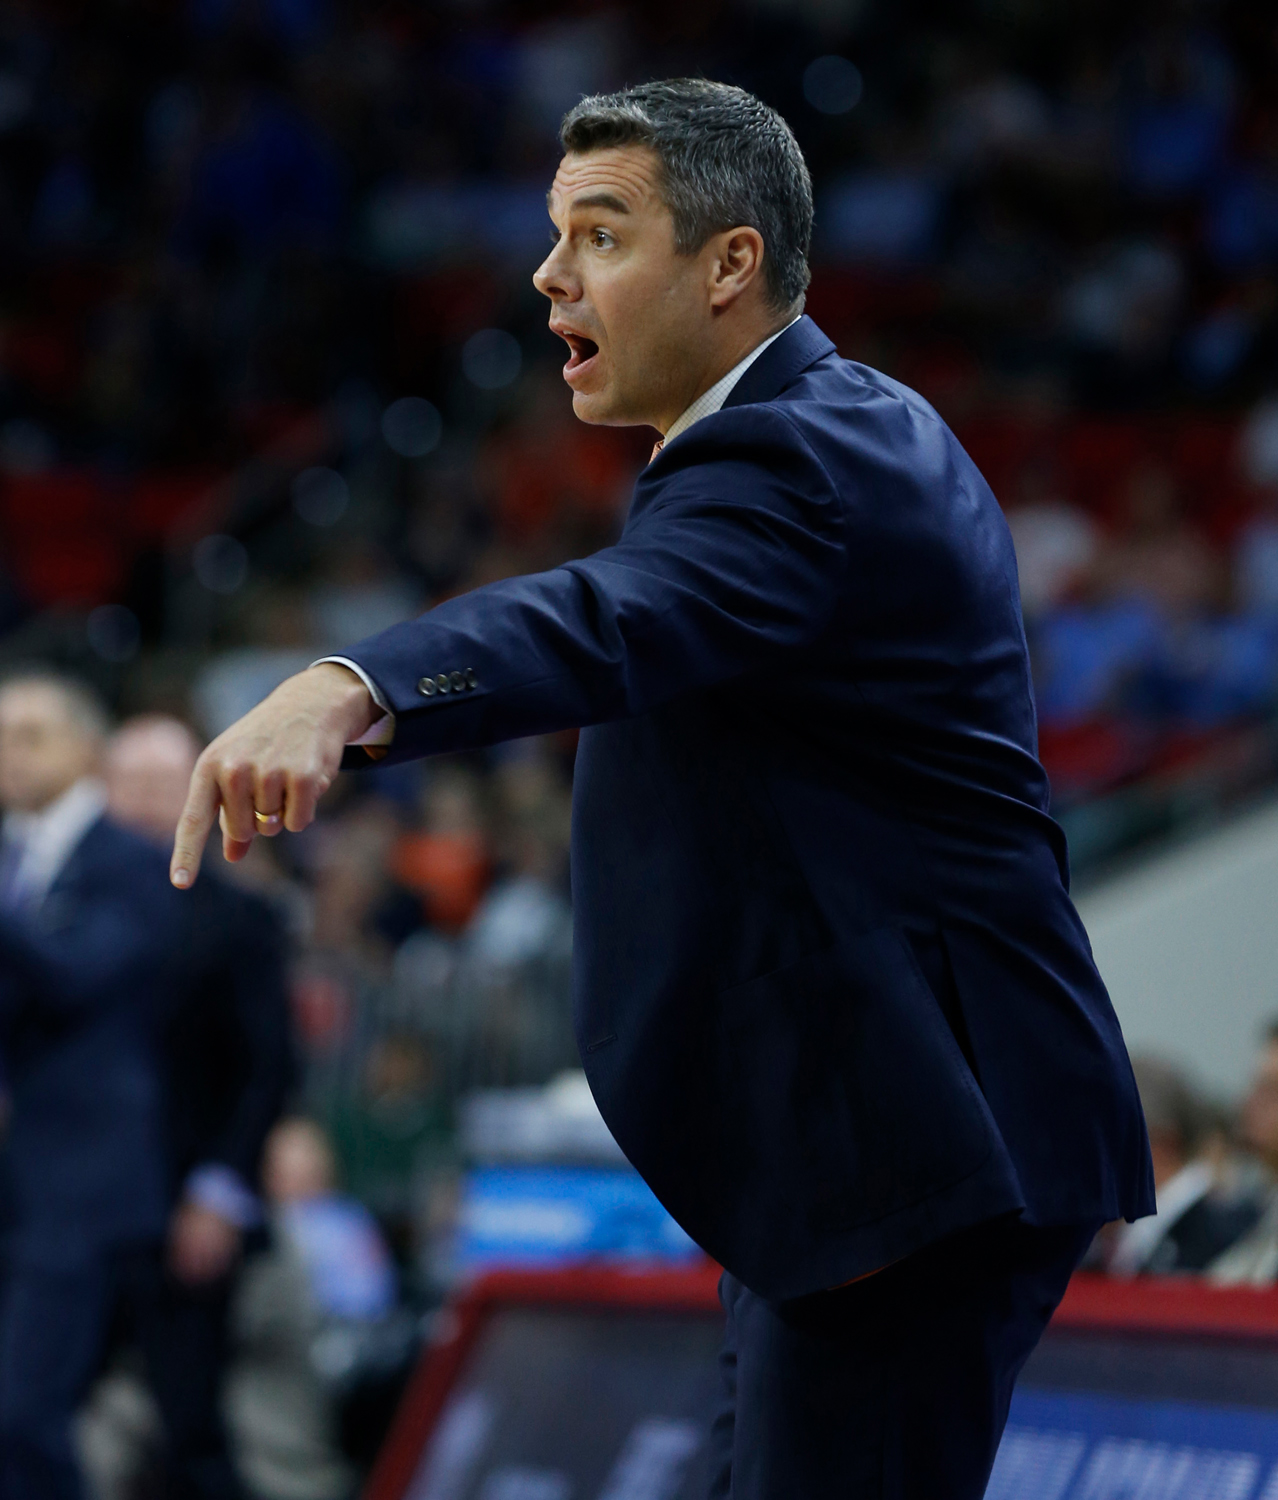 Virginia head coach Tony Bennett's Cavaliers enter this year's ACC Tournament as the No. 1 seed for the second straight season.